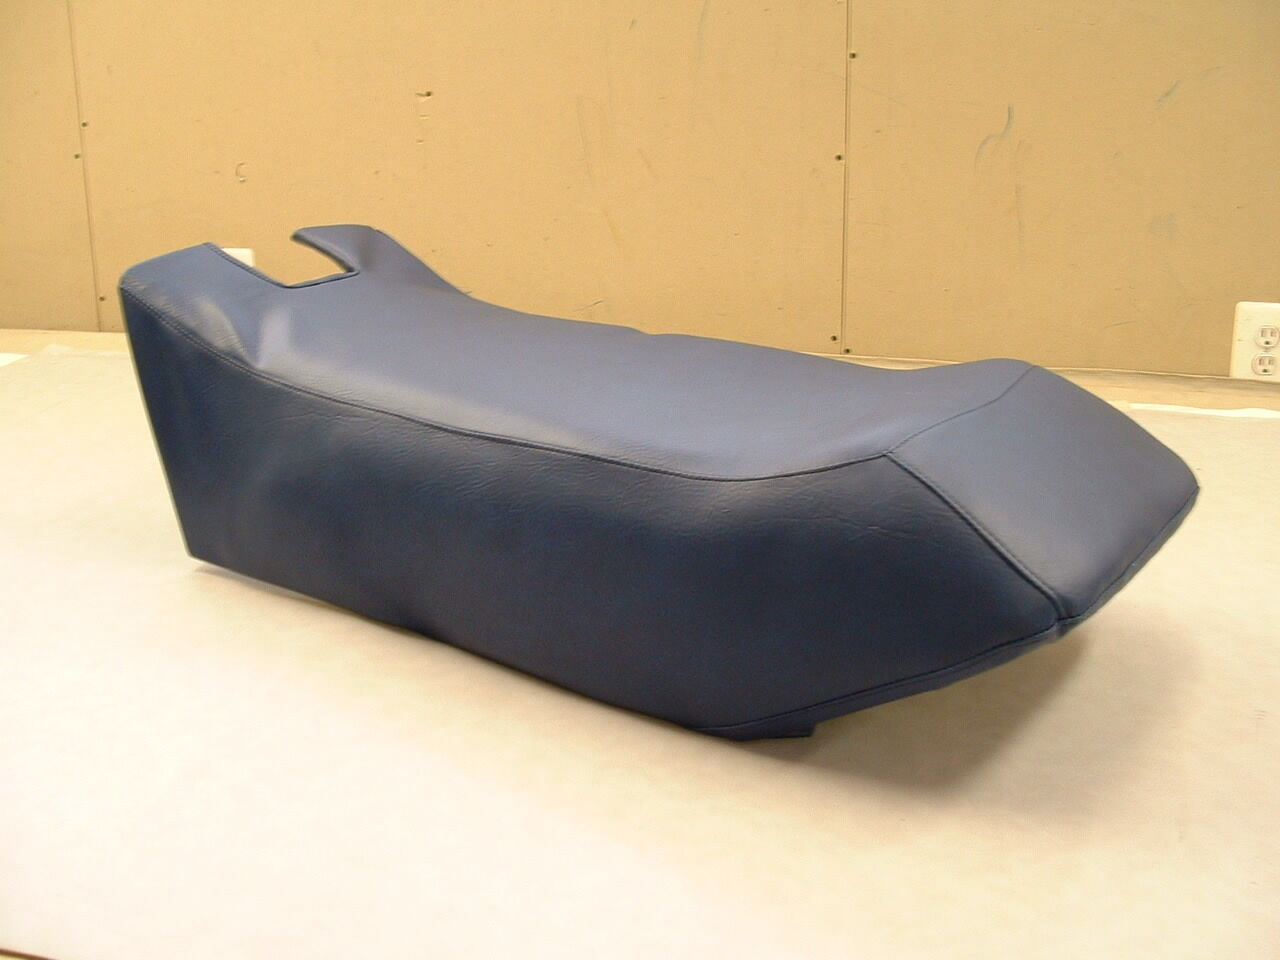 80-84 YAMAHA SS 440   80-82 SRV  blueE SNOWMOBILE SEAT COVER  NEW